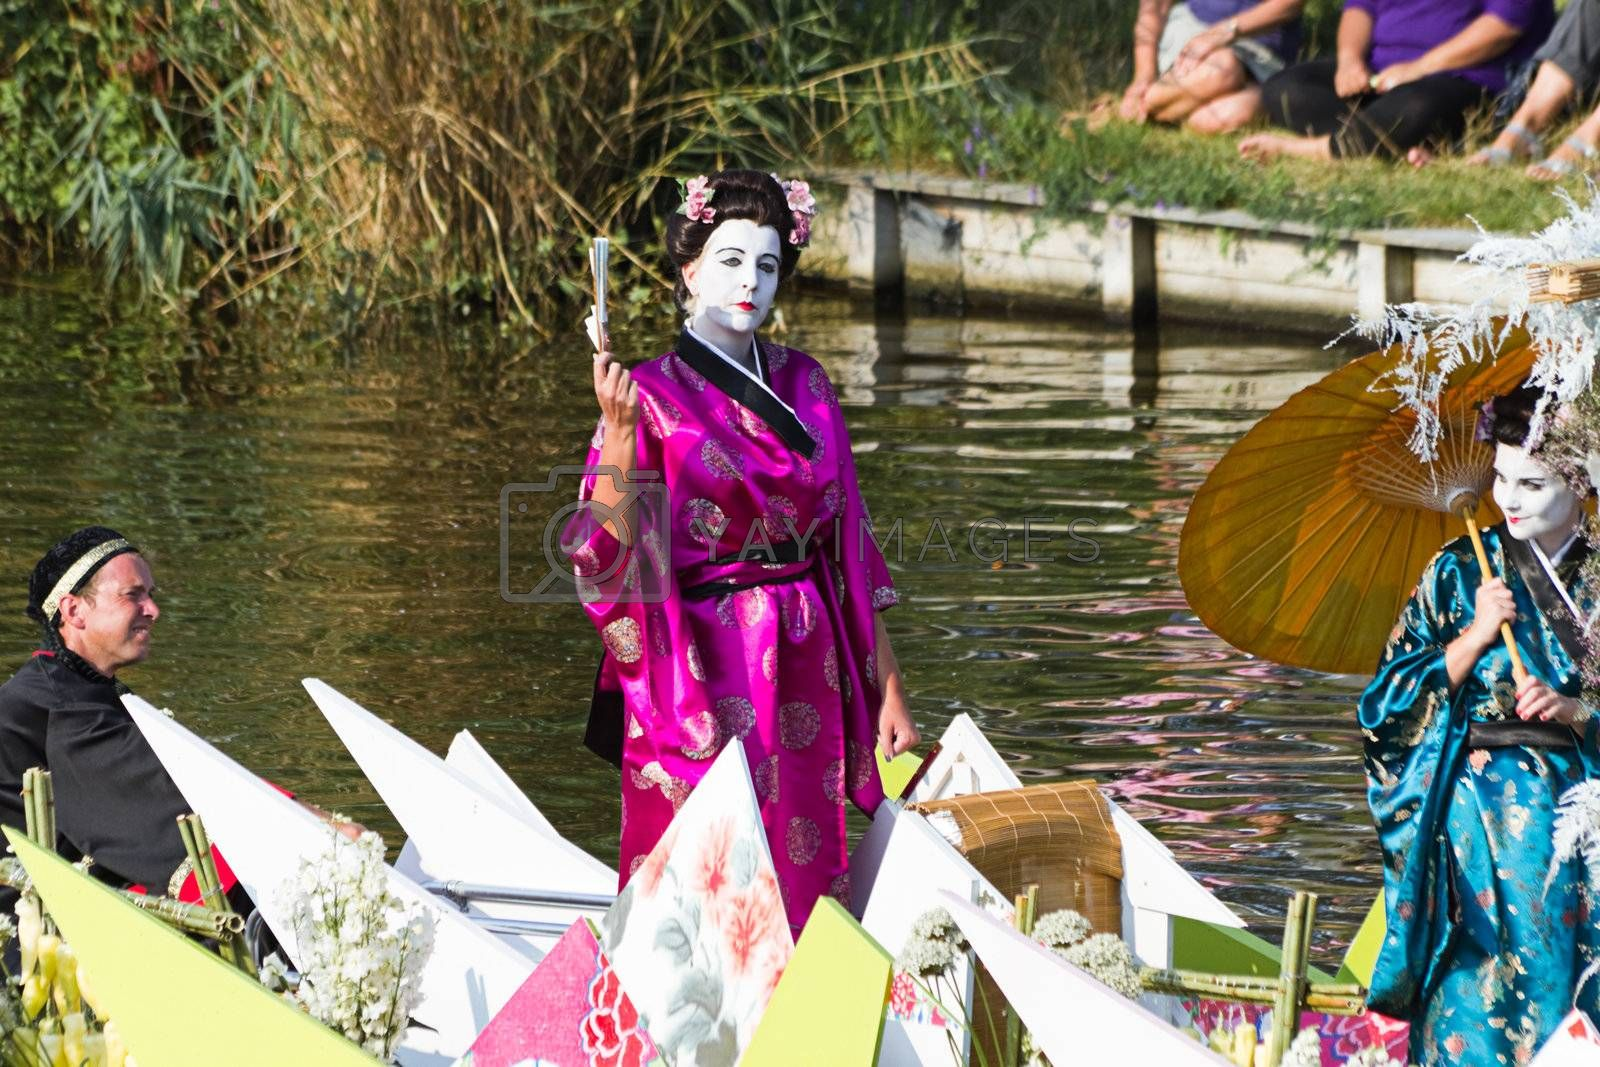 Royalty free image of Westland Floating Flower Parade 2010, The Netherlands by Colette